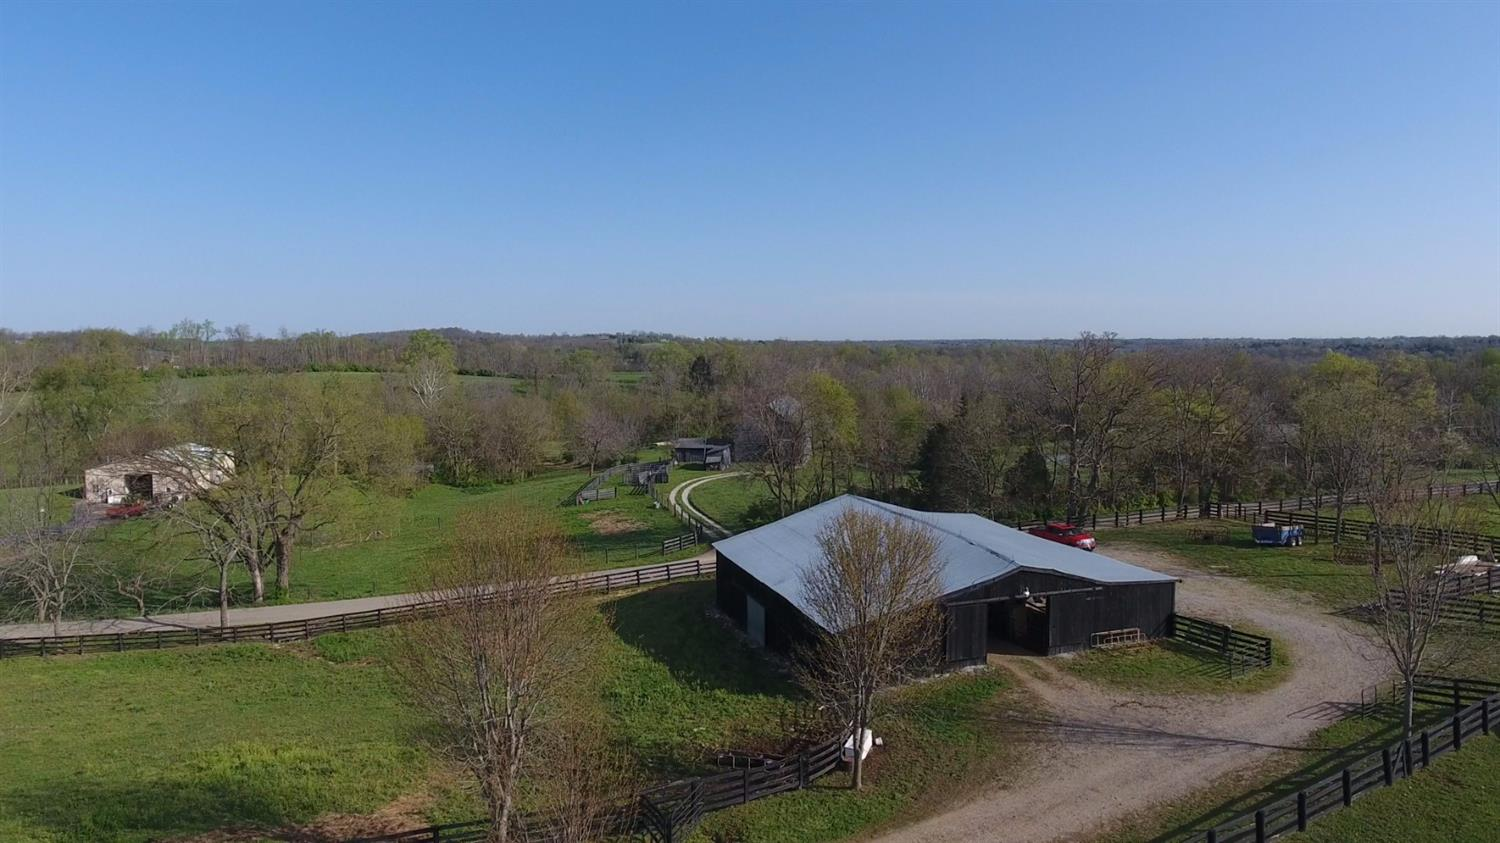 31.47%20acre%20farm%20that%20lies%20within%20the%20Nonesuch%201%20mile%20small%20community%20radius.%202%20story%20home%20with%203%20bedrooms%20and%202.5%20baths.%202%20car%20attached%20garage.%20%20The%20home%20is%20located%20in%20the%20corner%20of%20the%20farm%20with%20a%20separate%20entrance.%20%206%20bent%20stock%20barn,%20cattle%20waterers,%20water%20and%20electric%20in%20the%20barn.%20%20%20%20Check%20with%20listing%20agent%20or%20Woodford%20County%20Planning%20and%20Zoning%20for%20possible%20uses%20or%20divisions.%20%20Farm%20is%20gently%20rolling,%20mostly%20cleared.%20%20Four%20plank%20fencing%20at%20road%20and%20partially%20up%20the%20sides.%20%20The%20rest%20of%20the%20land%20has%20cattle%20fencing.%20Cattle%20waterer.%20%20See%20media%20for%20aerial%20video%20of%20the%20property.%20%20Please%20do%20not%20enter%20property%20without%20an%20agent.%20%20Cattle%20are%20currently%20grazing%20on%20the%20land.%20%20Click%20on%20View%20Virtual%20Tour%20for%20drone%20video%20of%20the%20property.